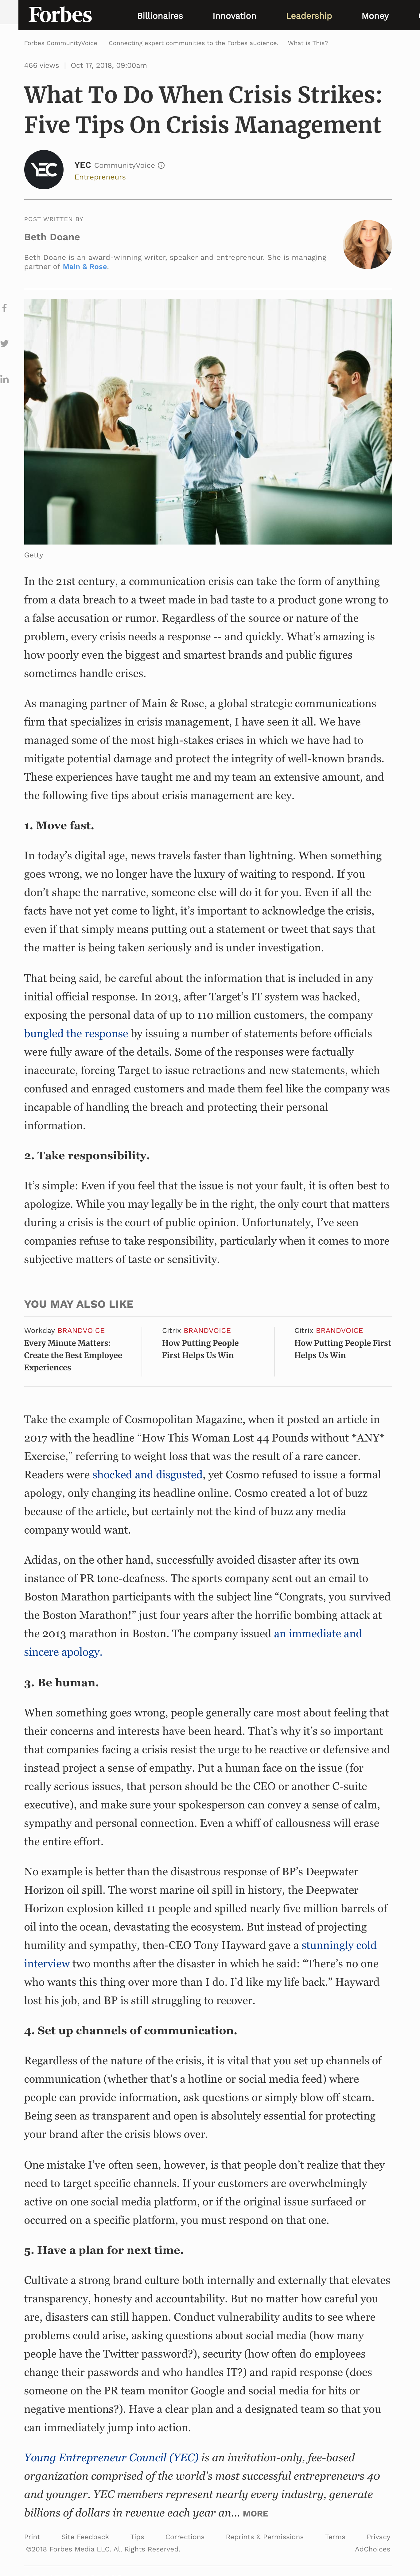 screencapture-forbes-sites-theyec-2018-10-17-what-to-do-when-crisis-strikes-five-tips-on-crisis-management-2018-11-23-12_07_23.png